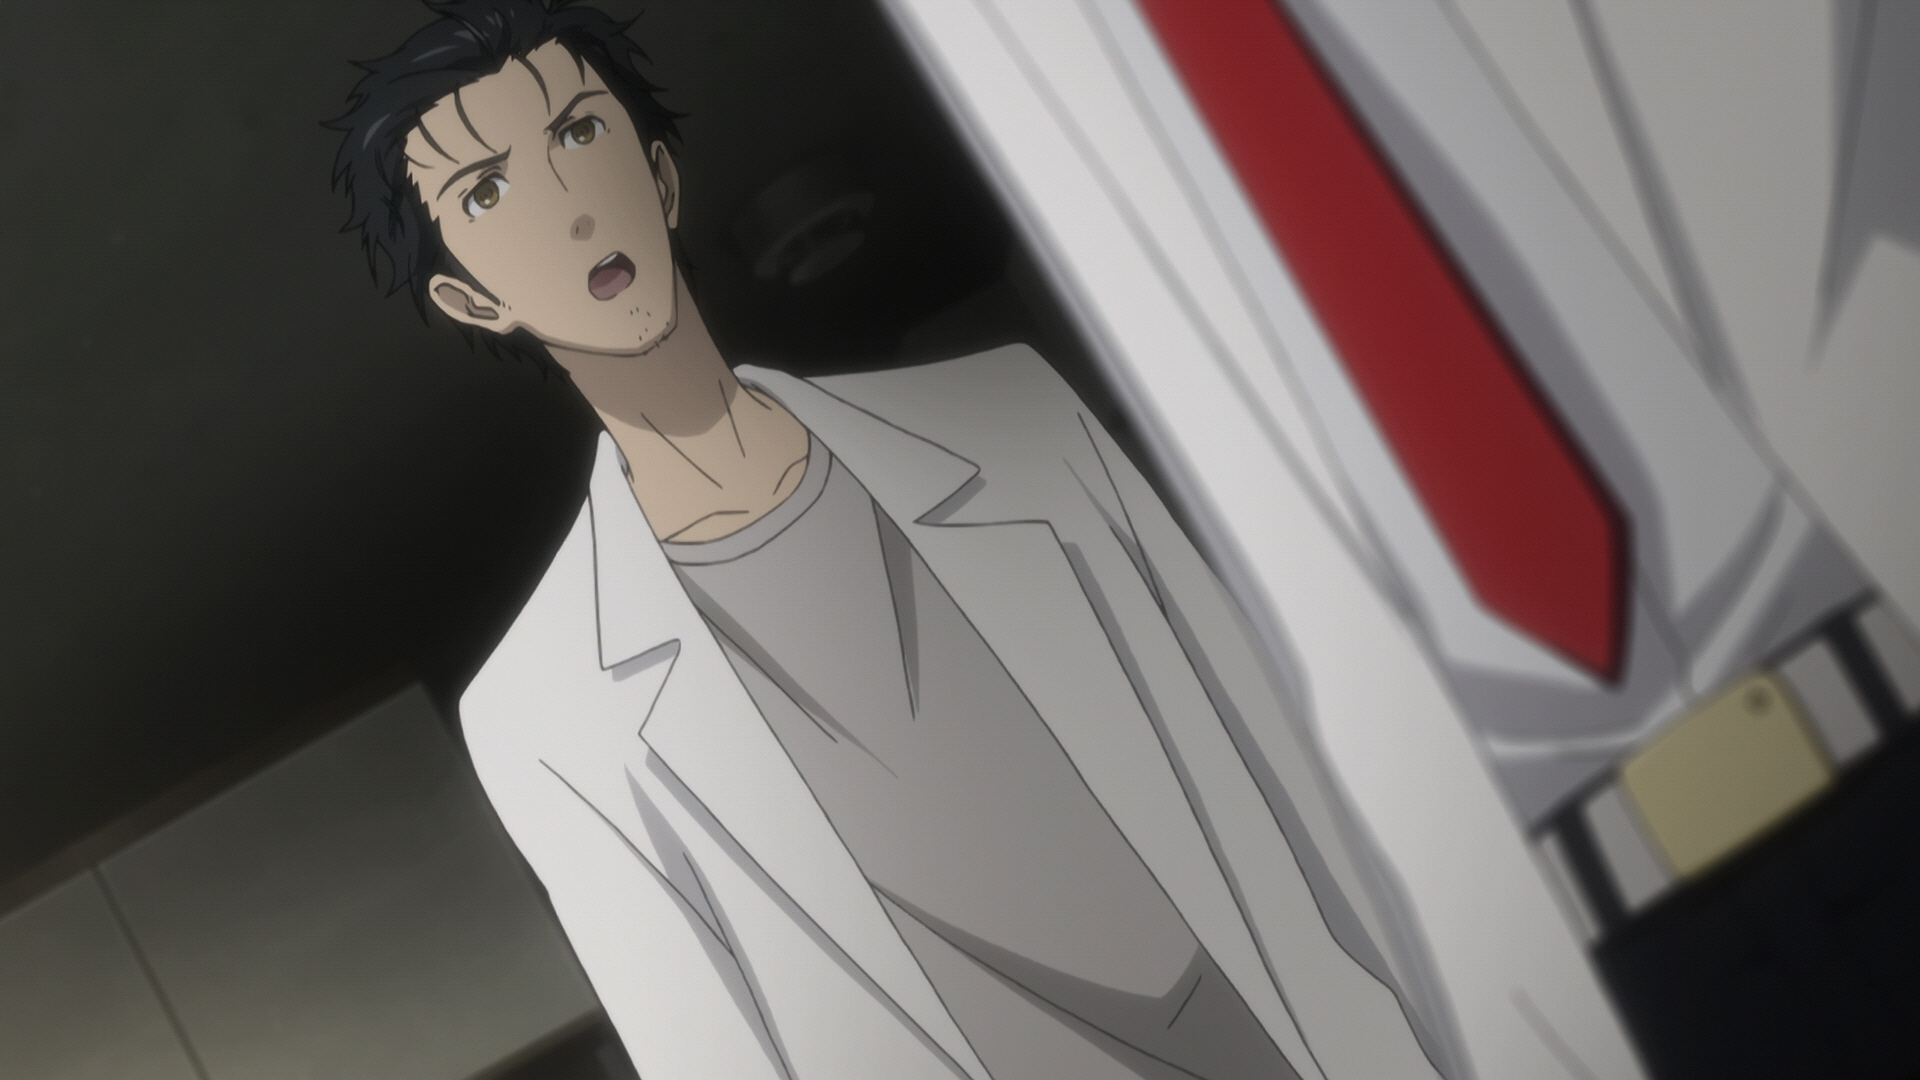 Steins Gate Episode 11 Dogma in Event Horizon 04